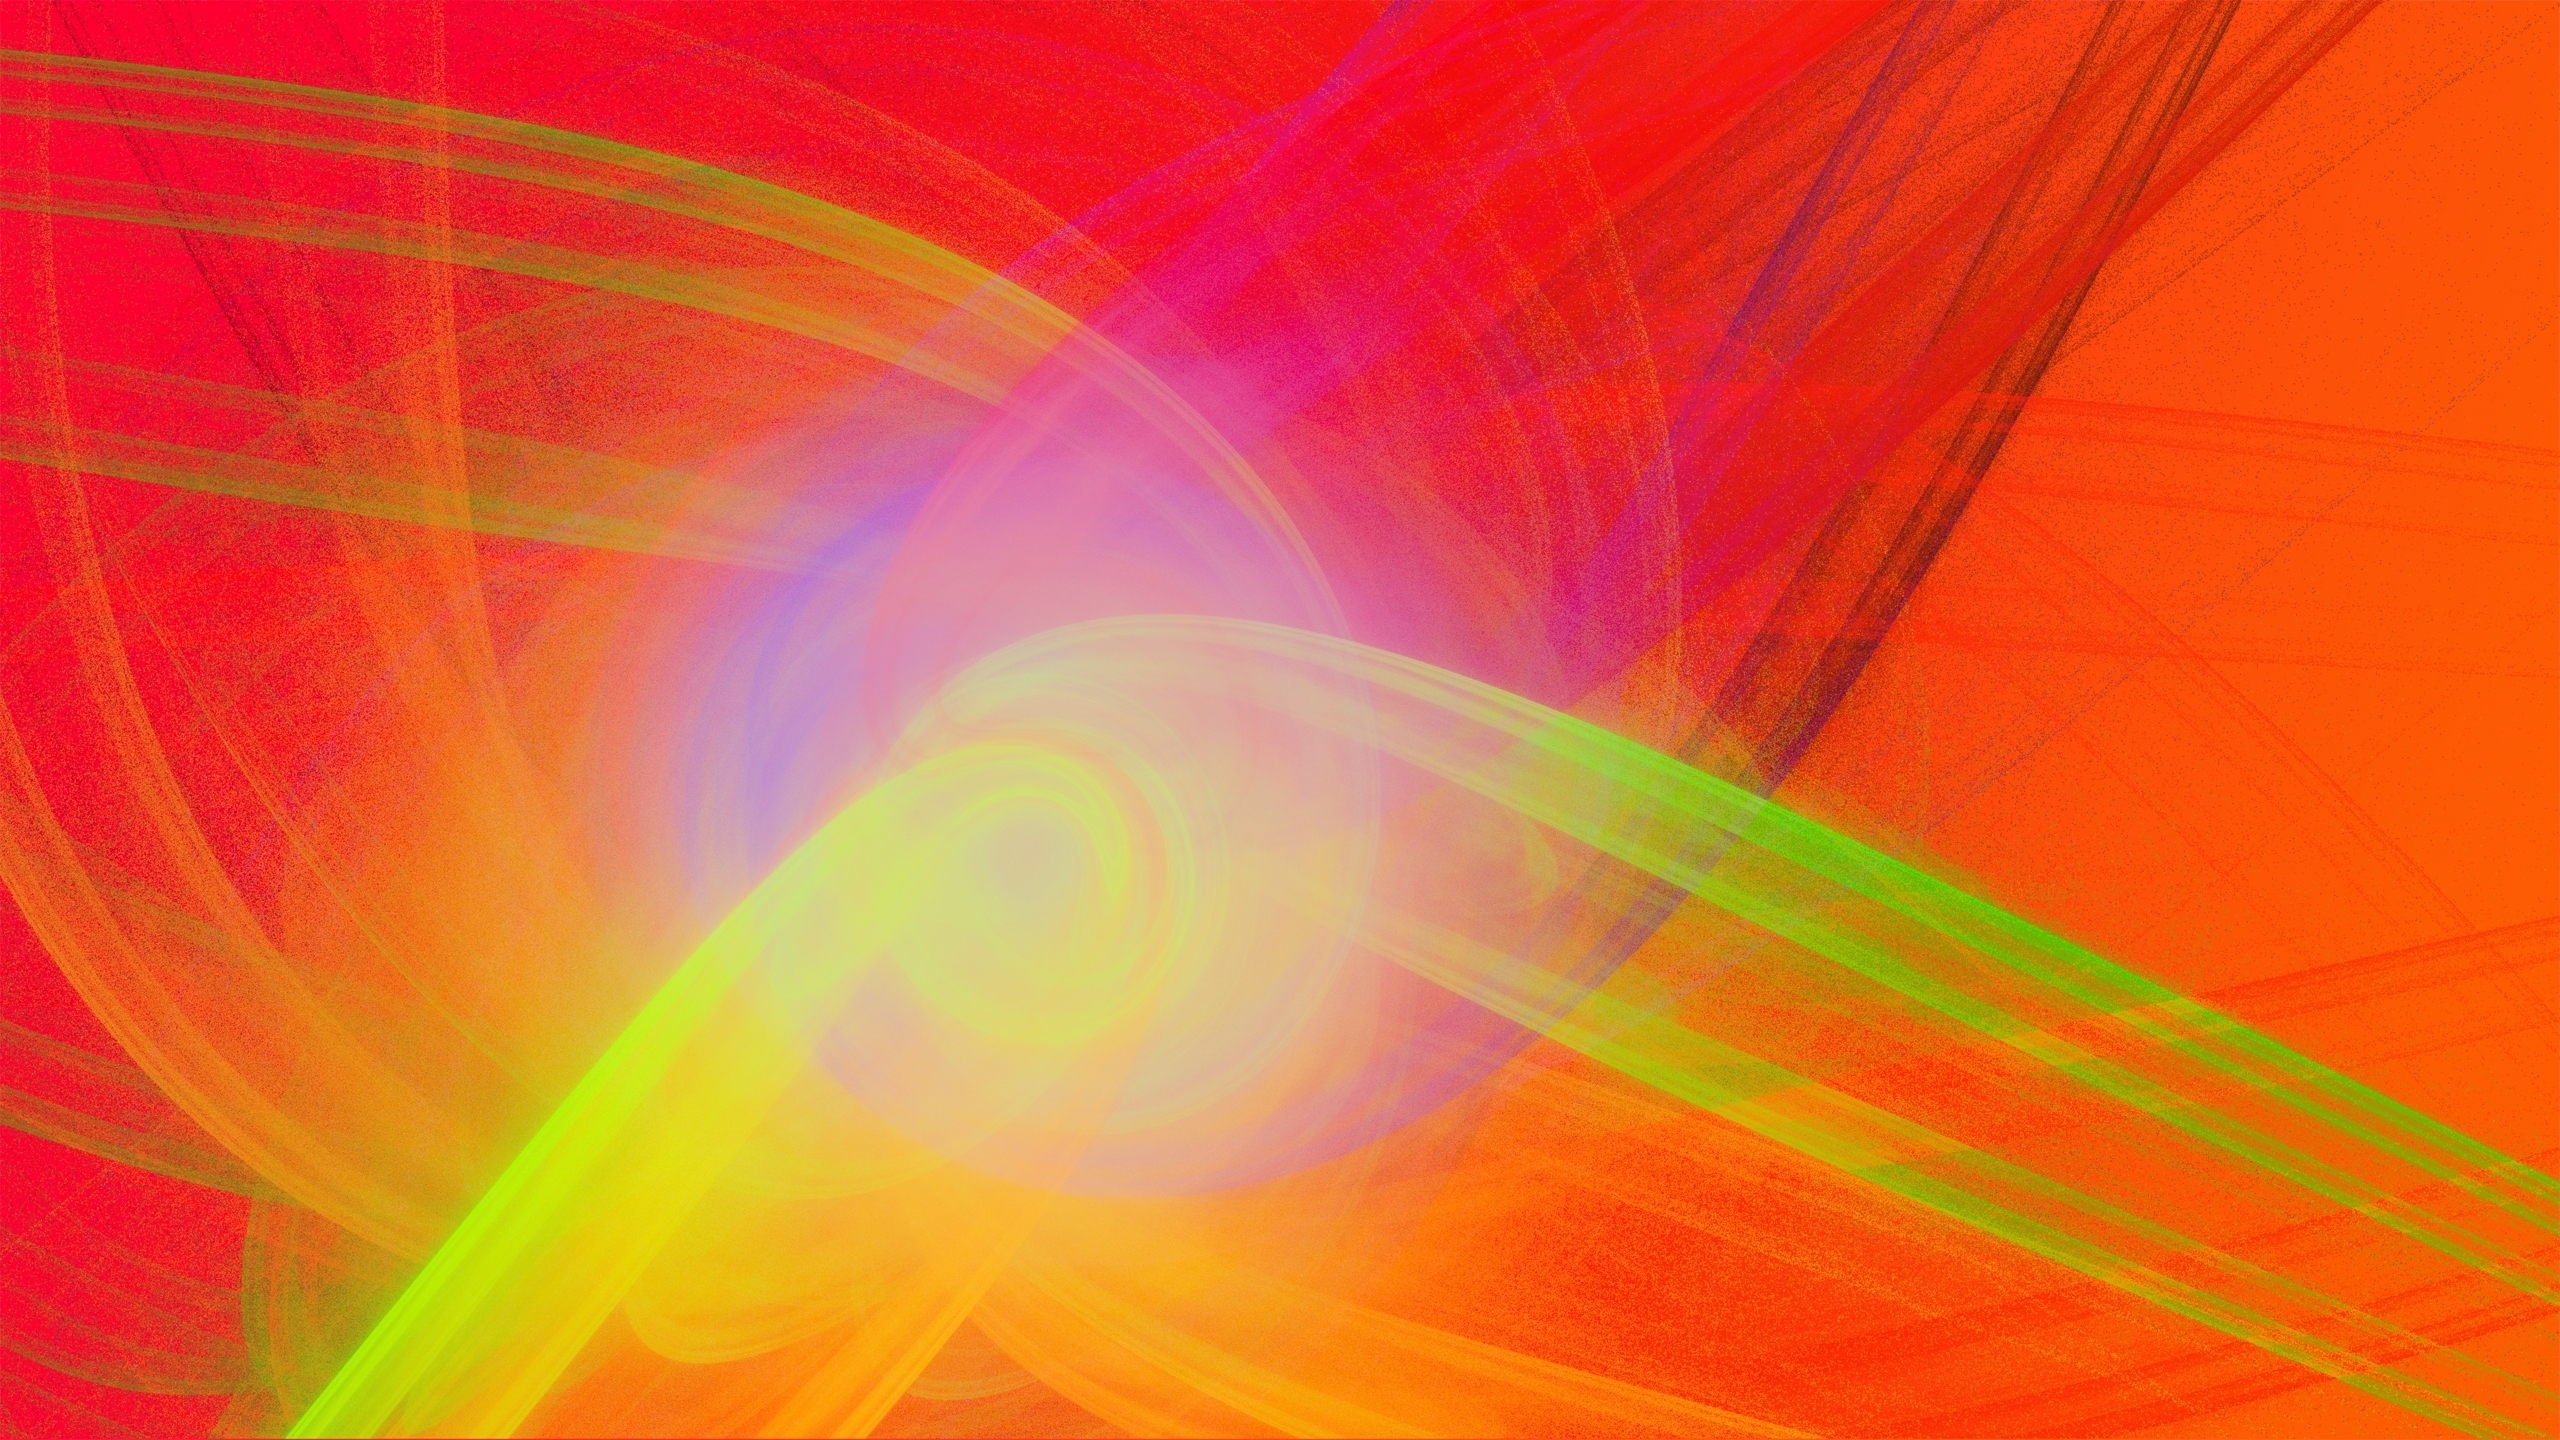 abstract orange yellow and red background hd wallpaper